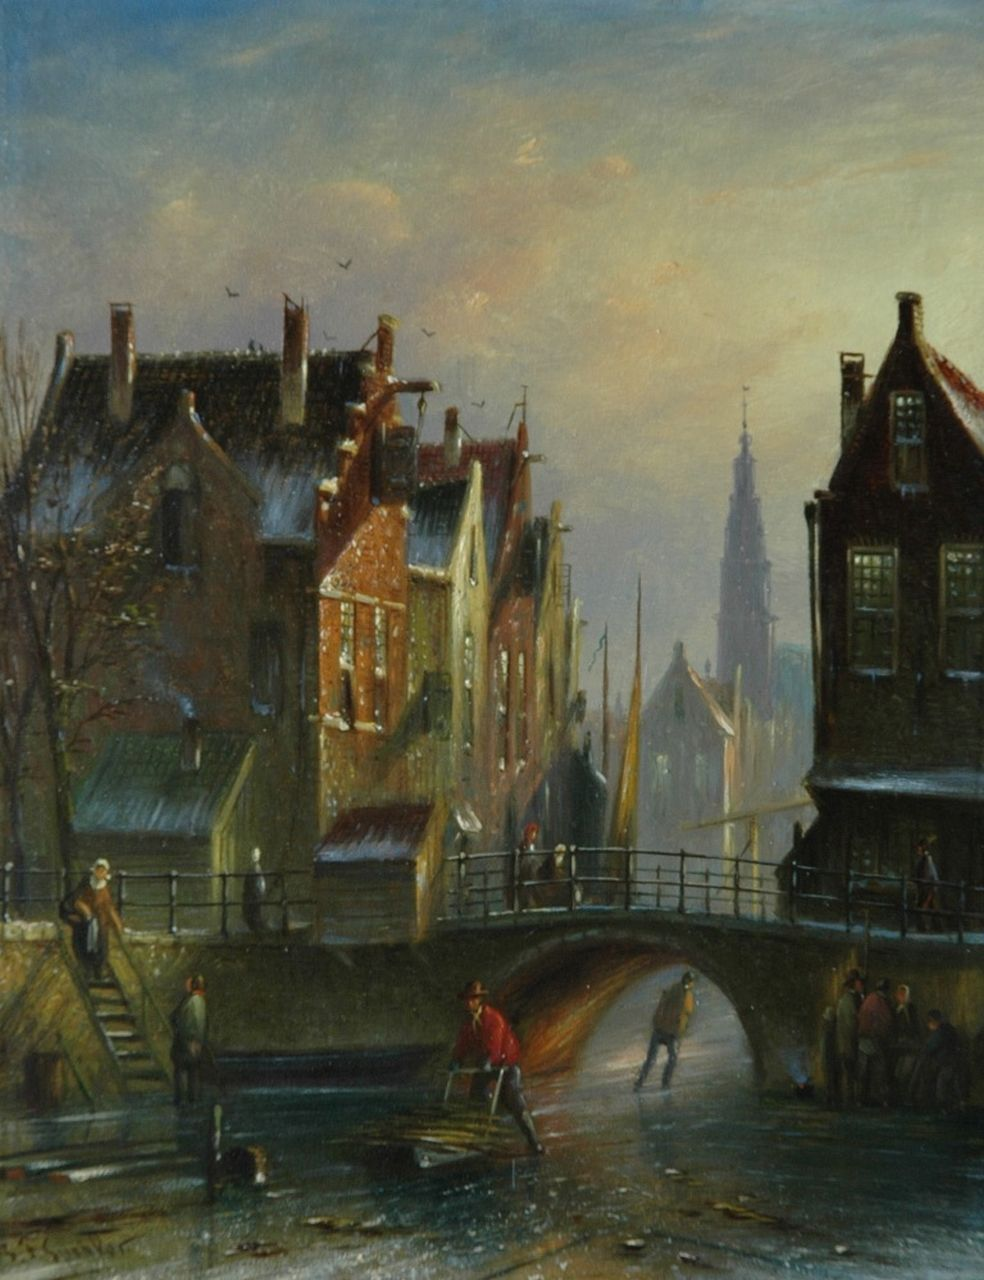 Spohler J.F.  | Johannes Franciscus Spohler, Figures on a Dutch canal in winter, oil on panel 20.5 x 16.0 cm, signed l.l.